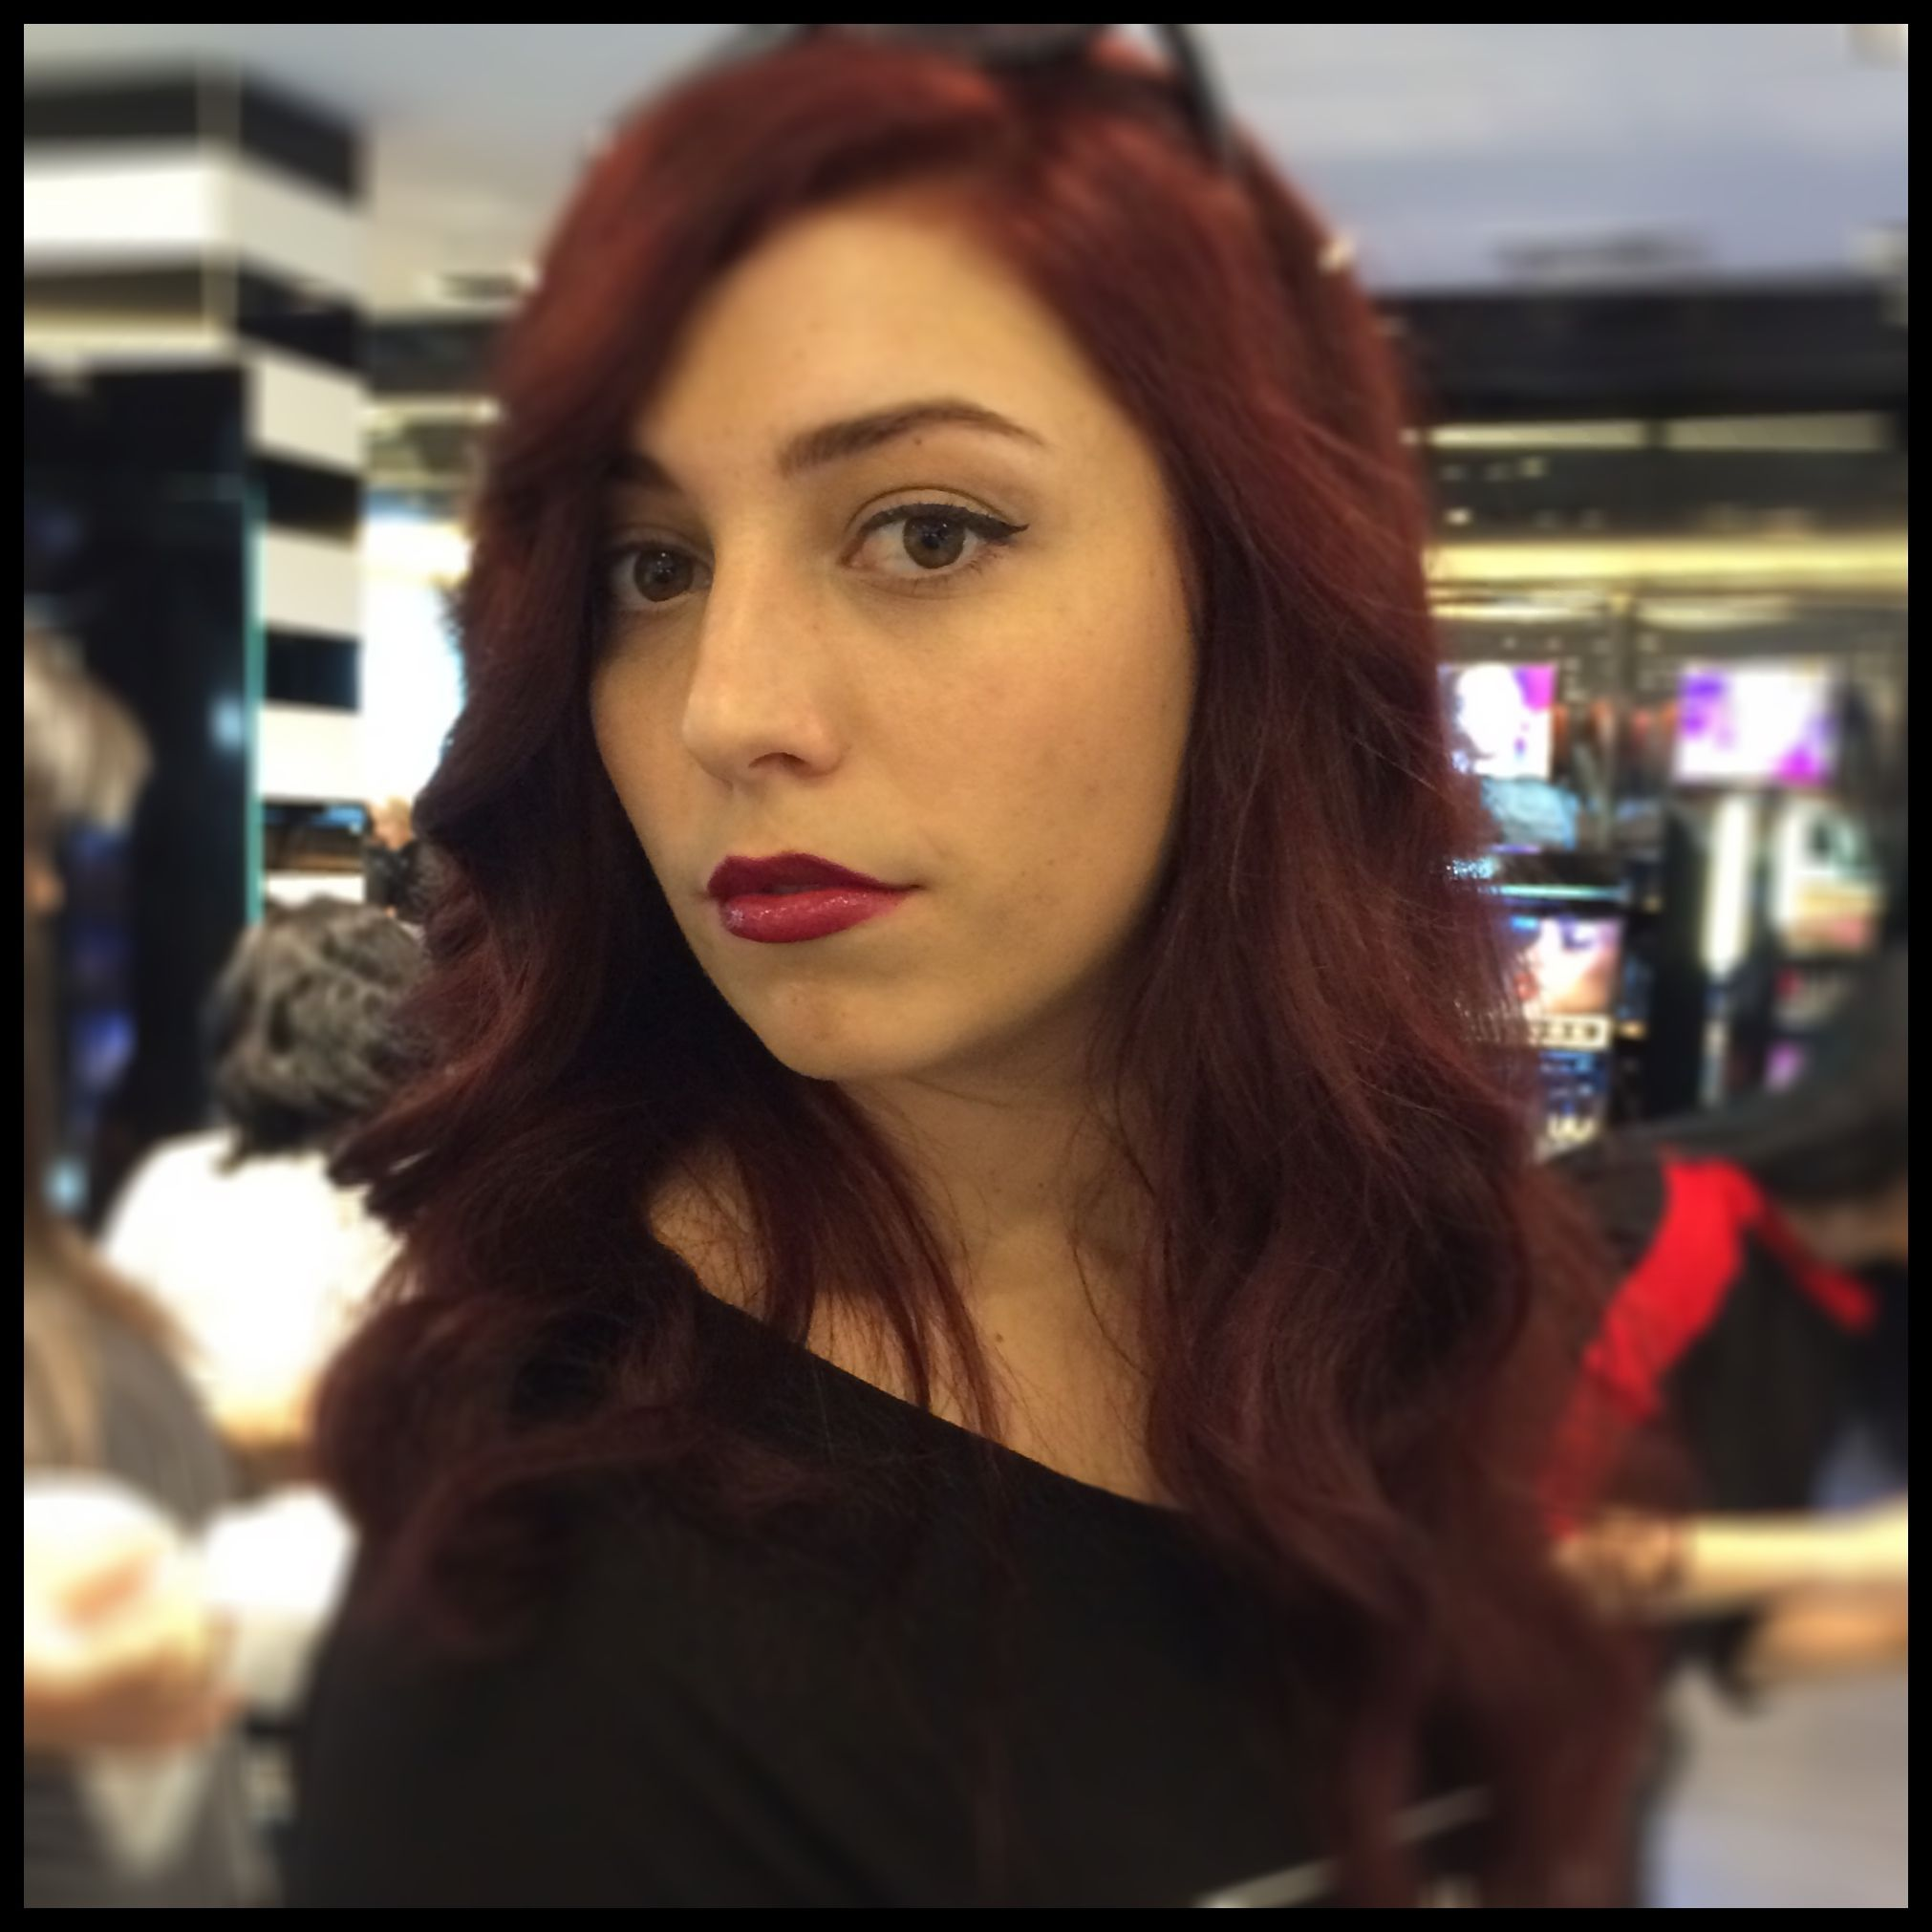 Merlot hair color - My Good Friend Kelly Recently Changed Her Hair Color To This Sort Of Merlot Purplish